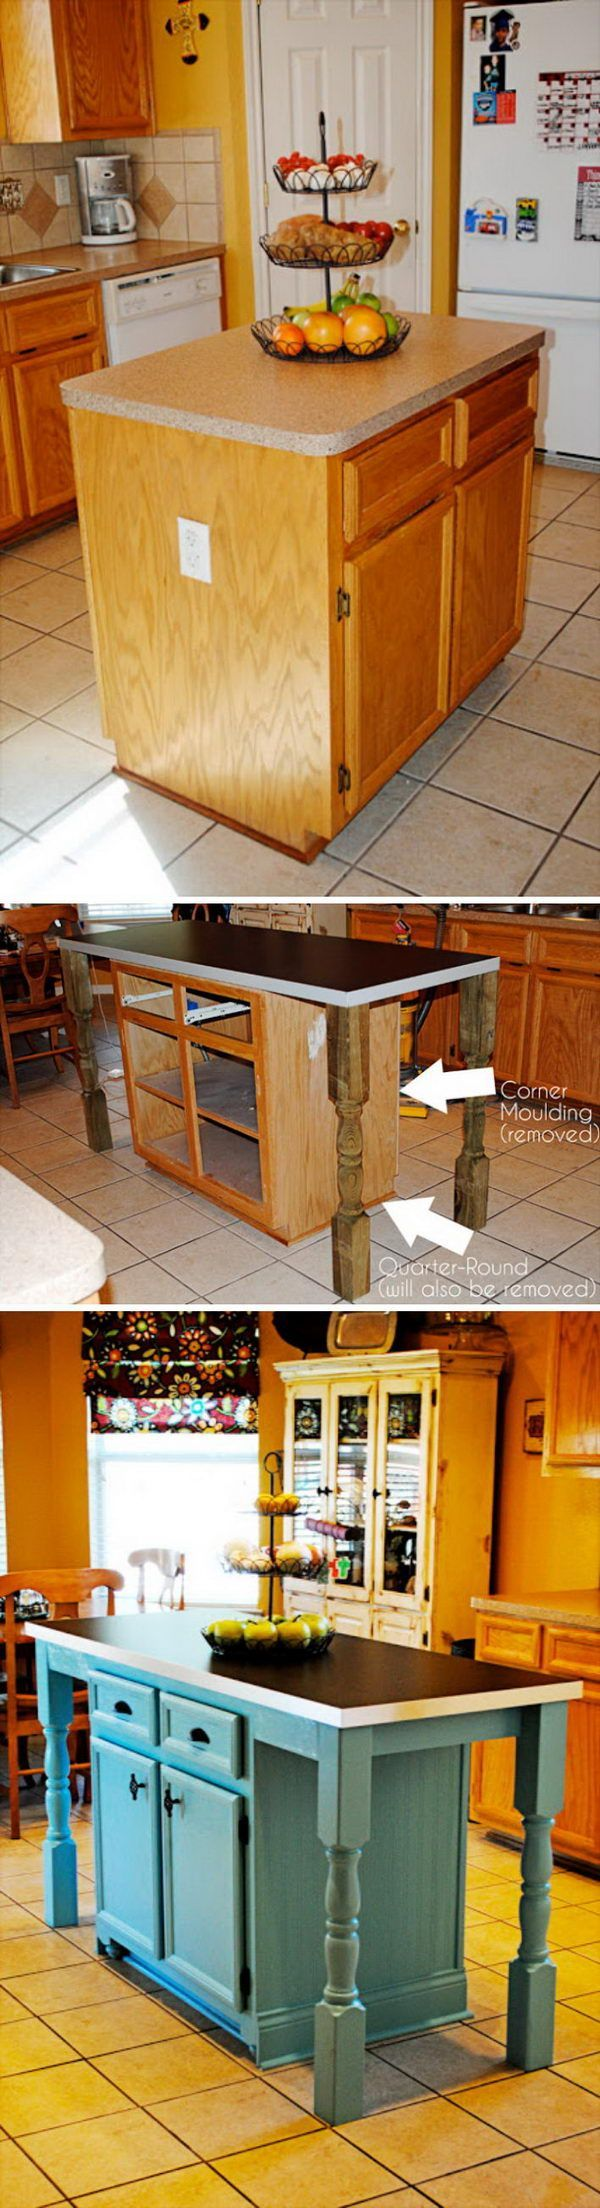 Clever Kitchen Island Makeover - 40 High Style Low-Budget Furniture ...